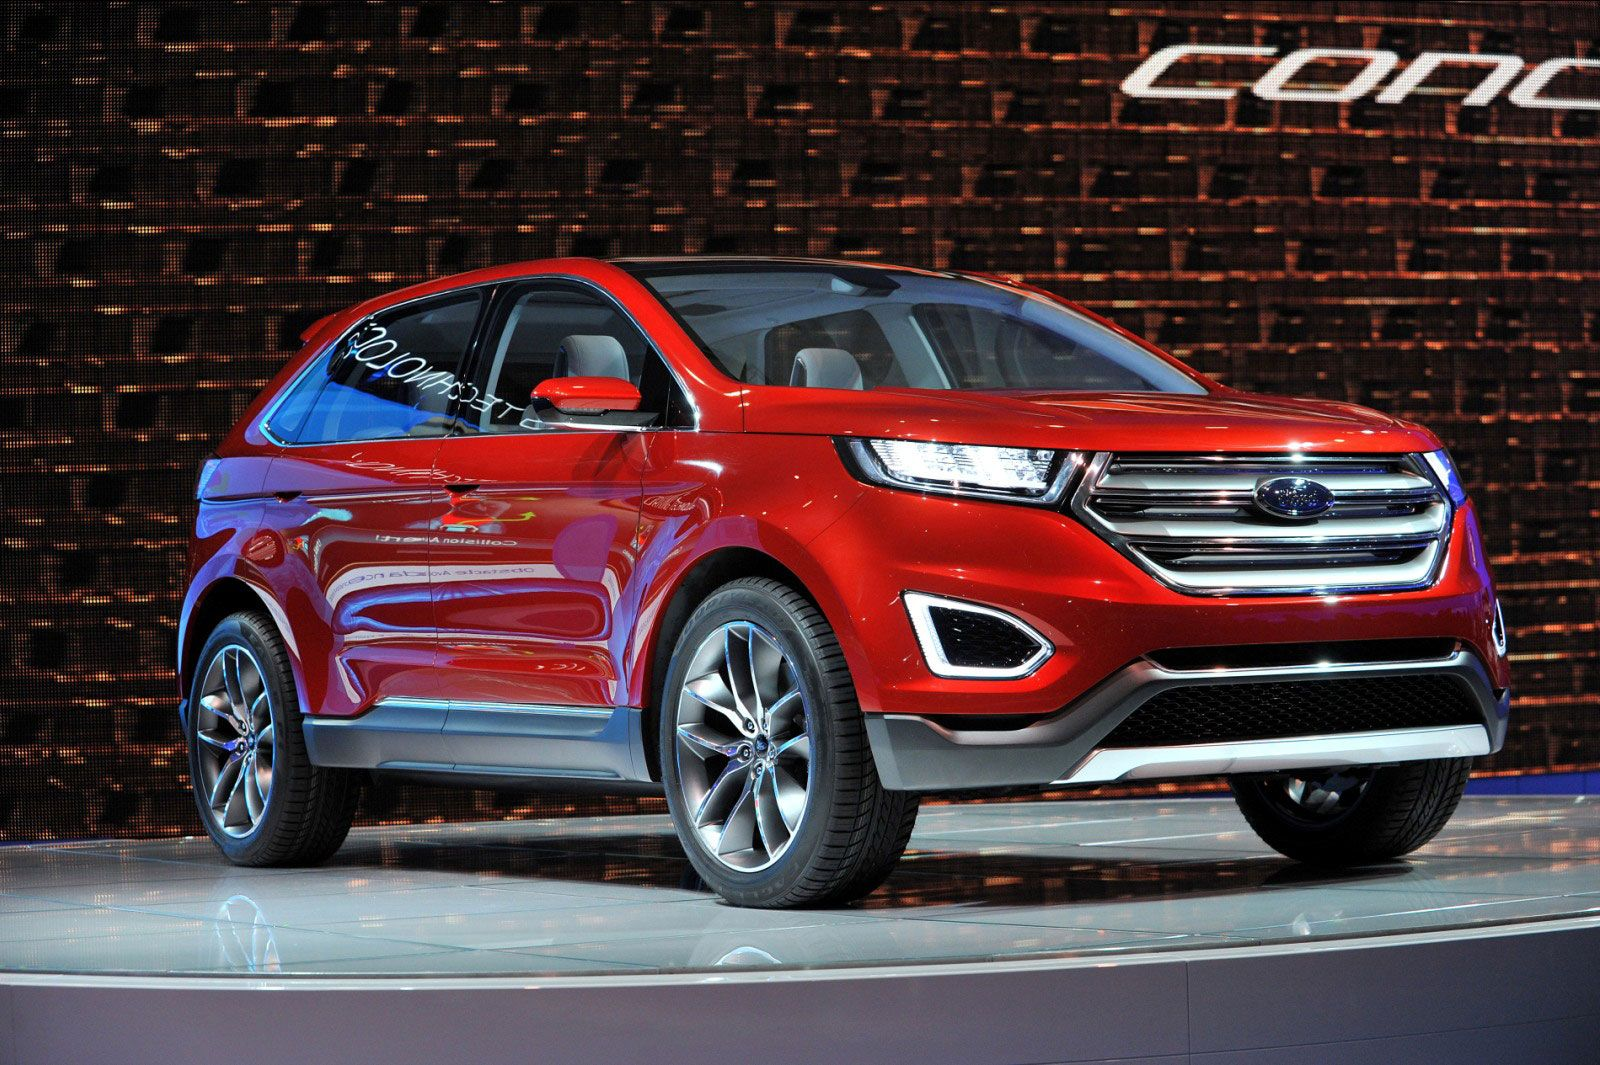 2017carsrevolution 2016 Ford Edge For Changes Concept Exterior